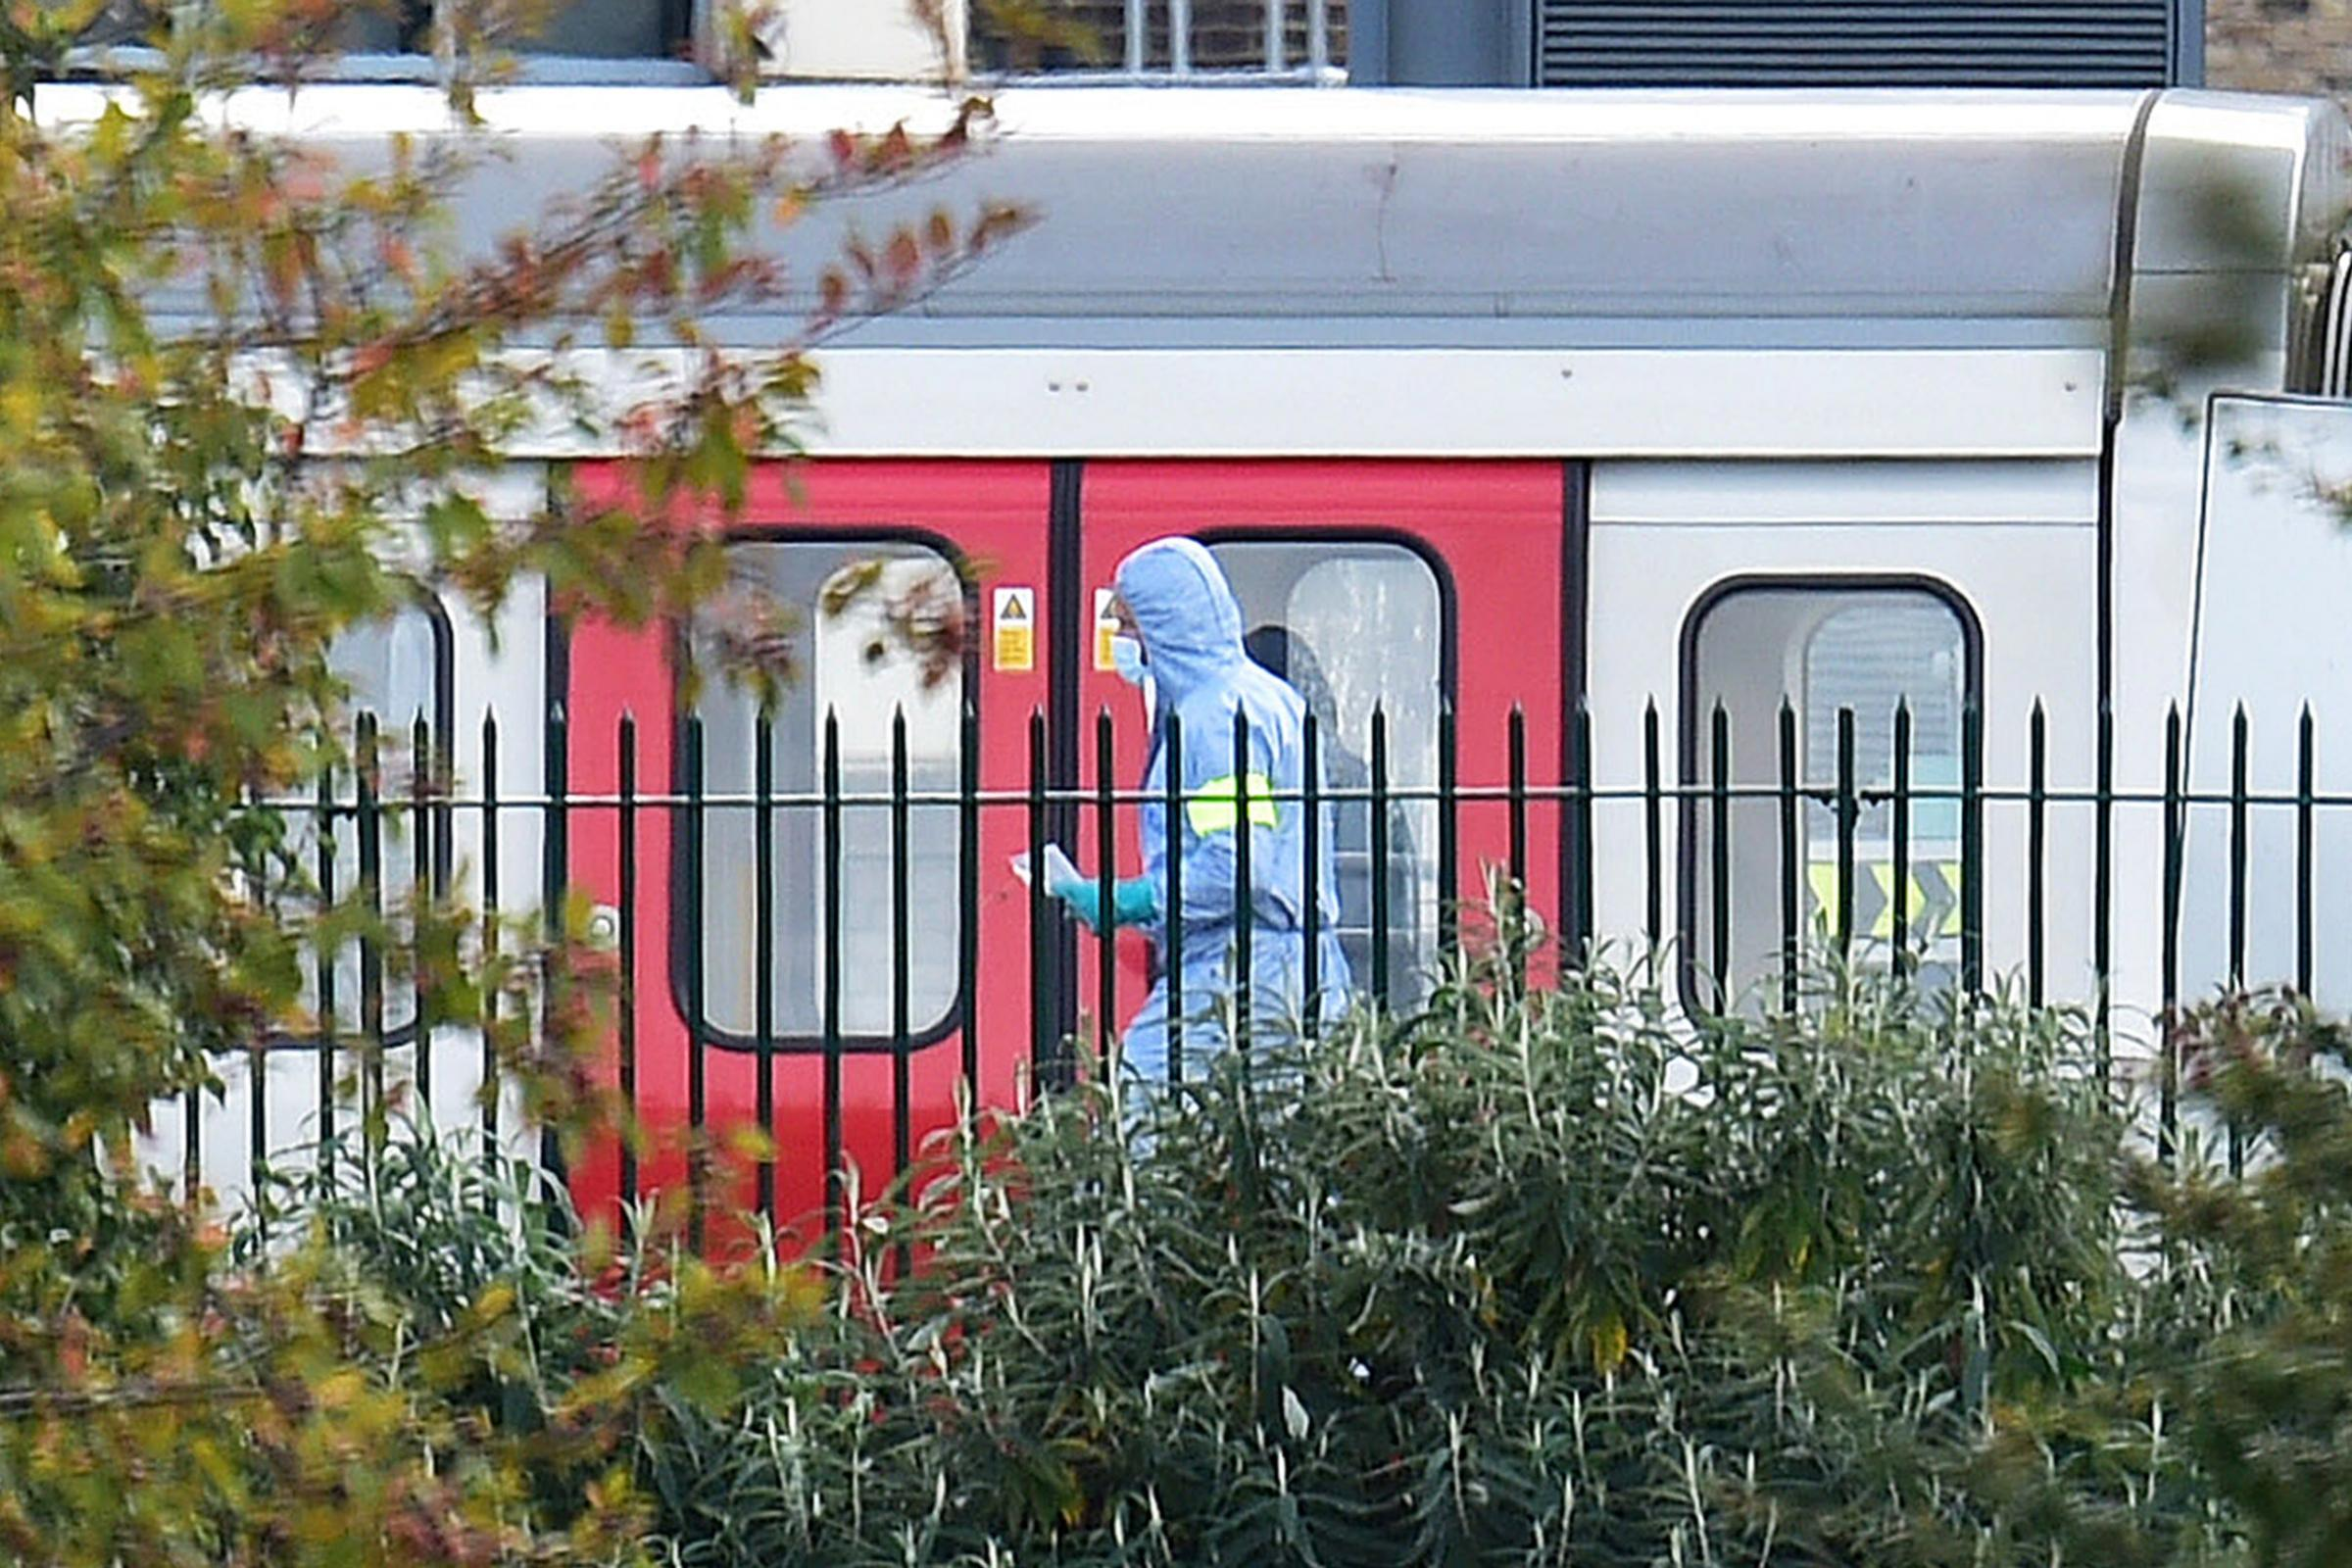 A forensics officer on the platform at Parsons Green station in west London (Dominic Lipinski/PA)